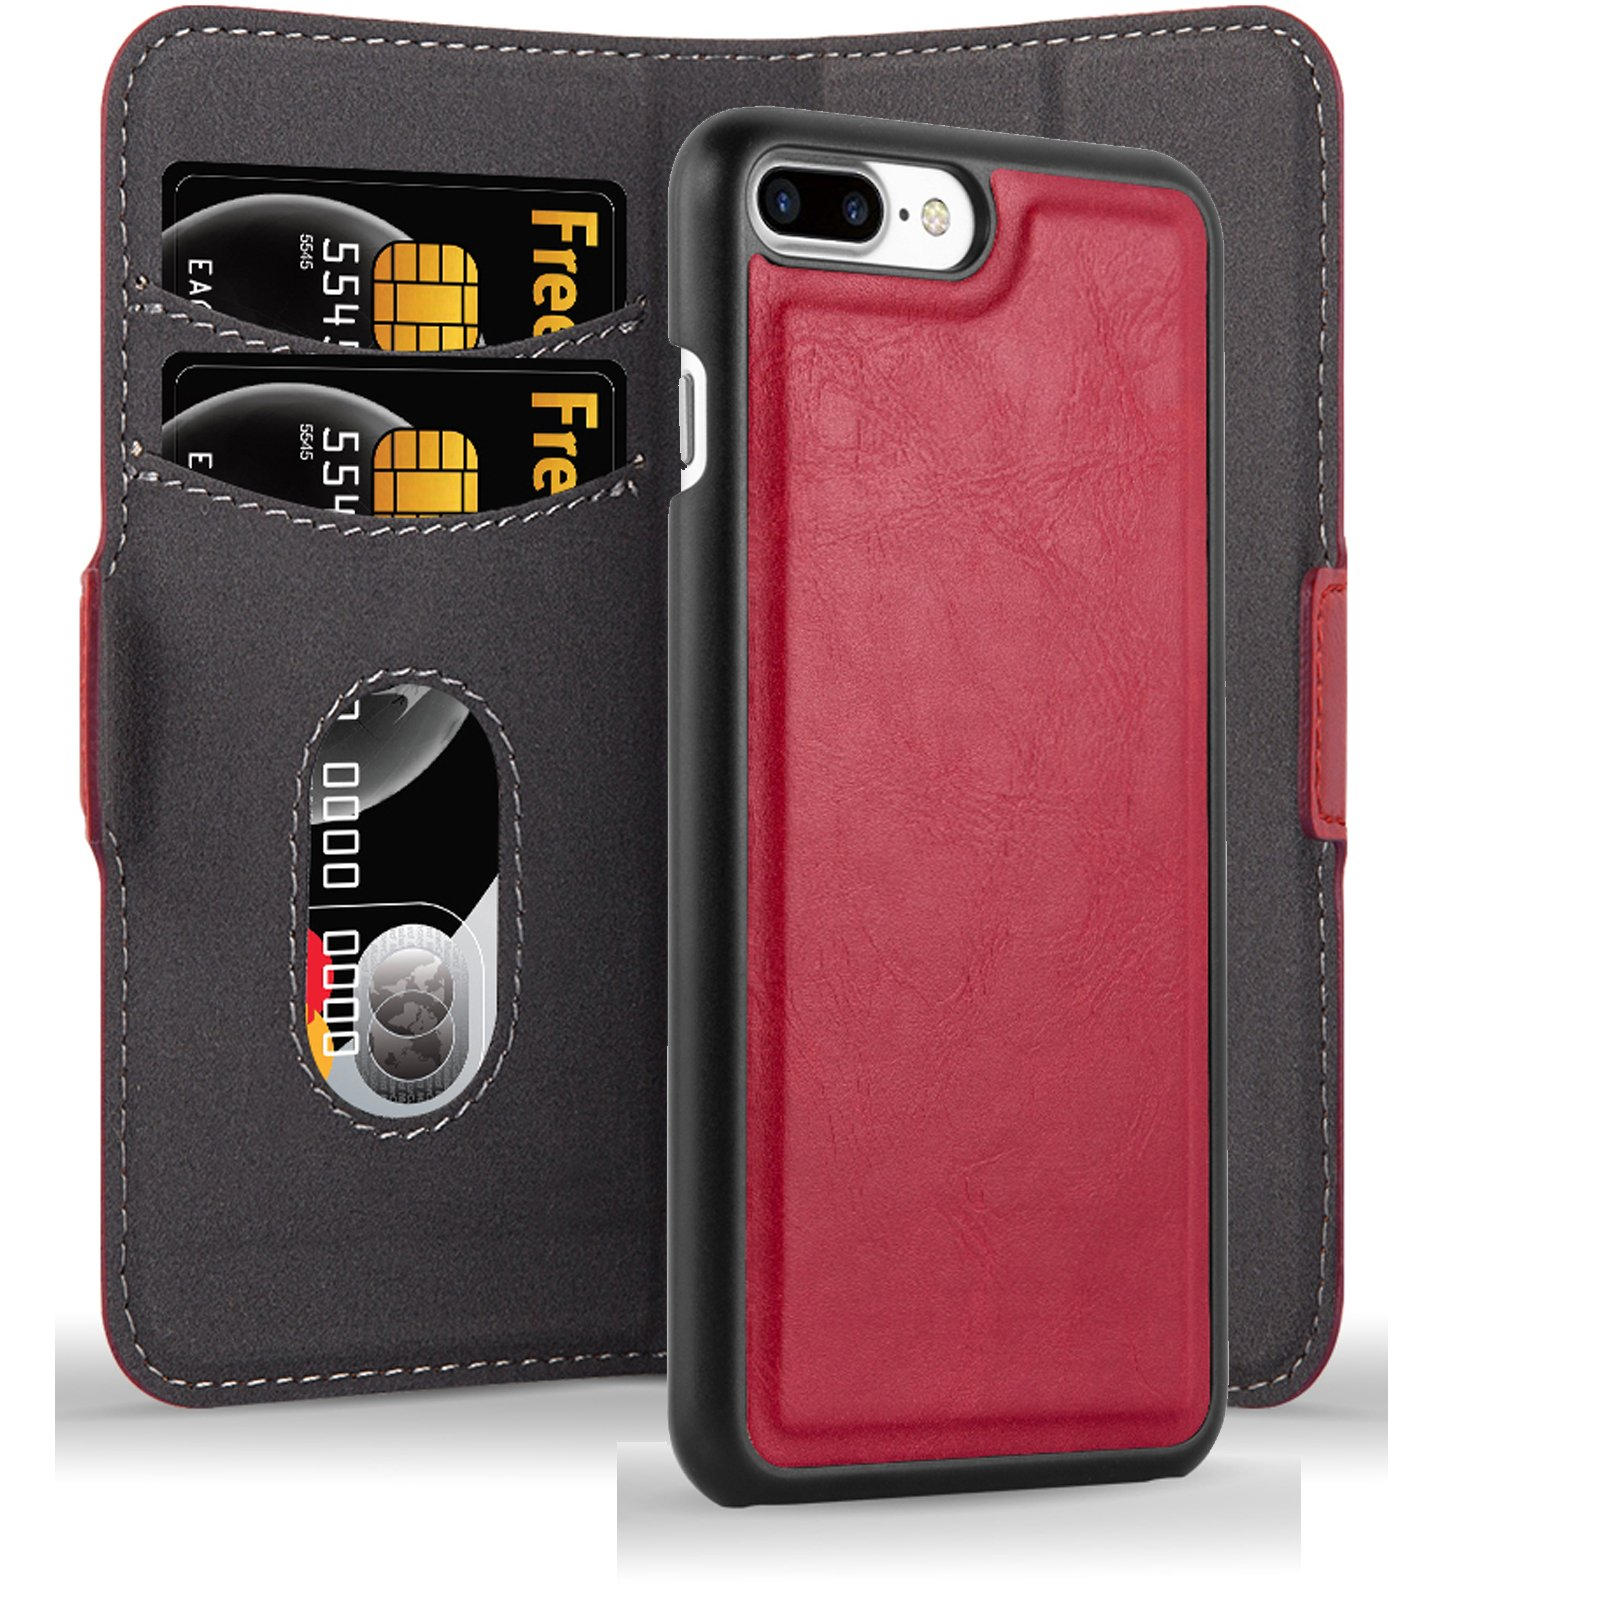 Cadorabo Apple iPhone 8 Plus / 7 Plus / 7S Plus Funda de Cuero Sintético 2 EN 1